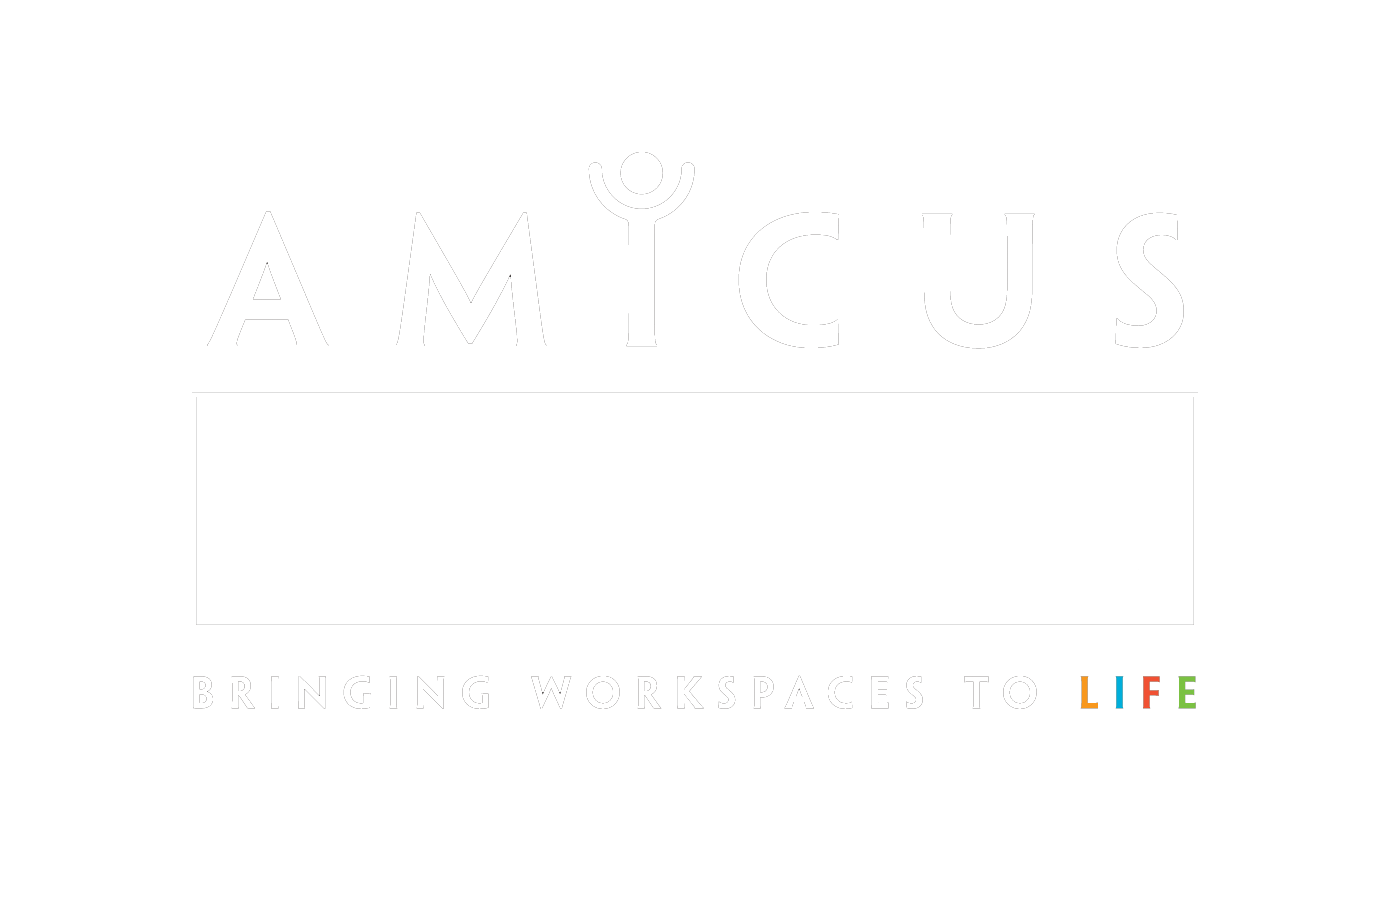 Amicus_LABLINE_Just_Whitepsd.png